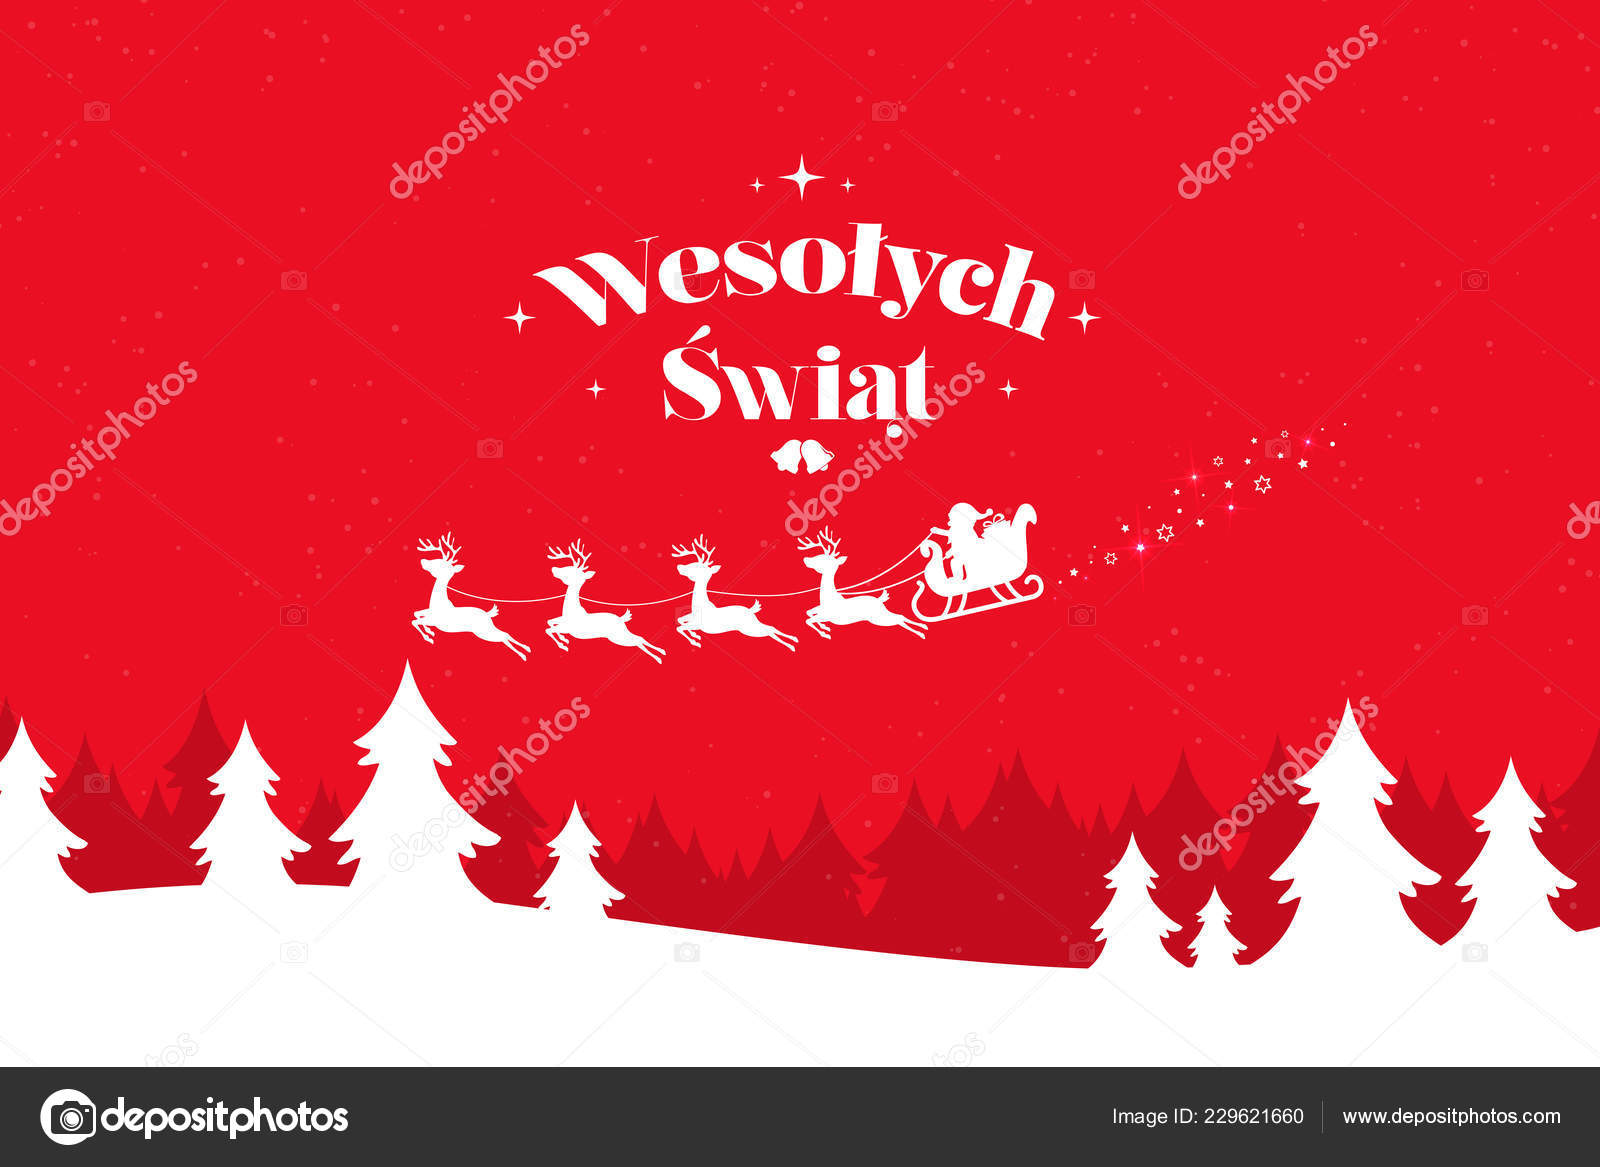 Merry Christmas In Polish.Greeting Card Stylish Merry Christmas Lettering Polish